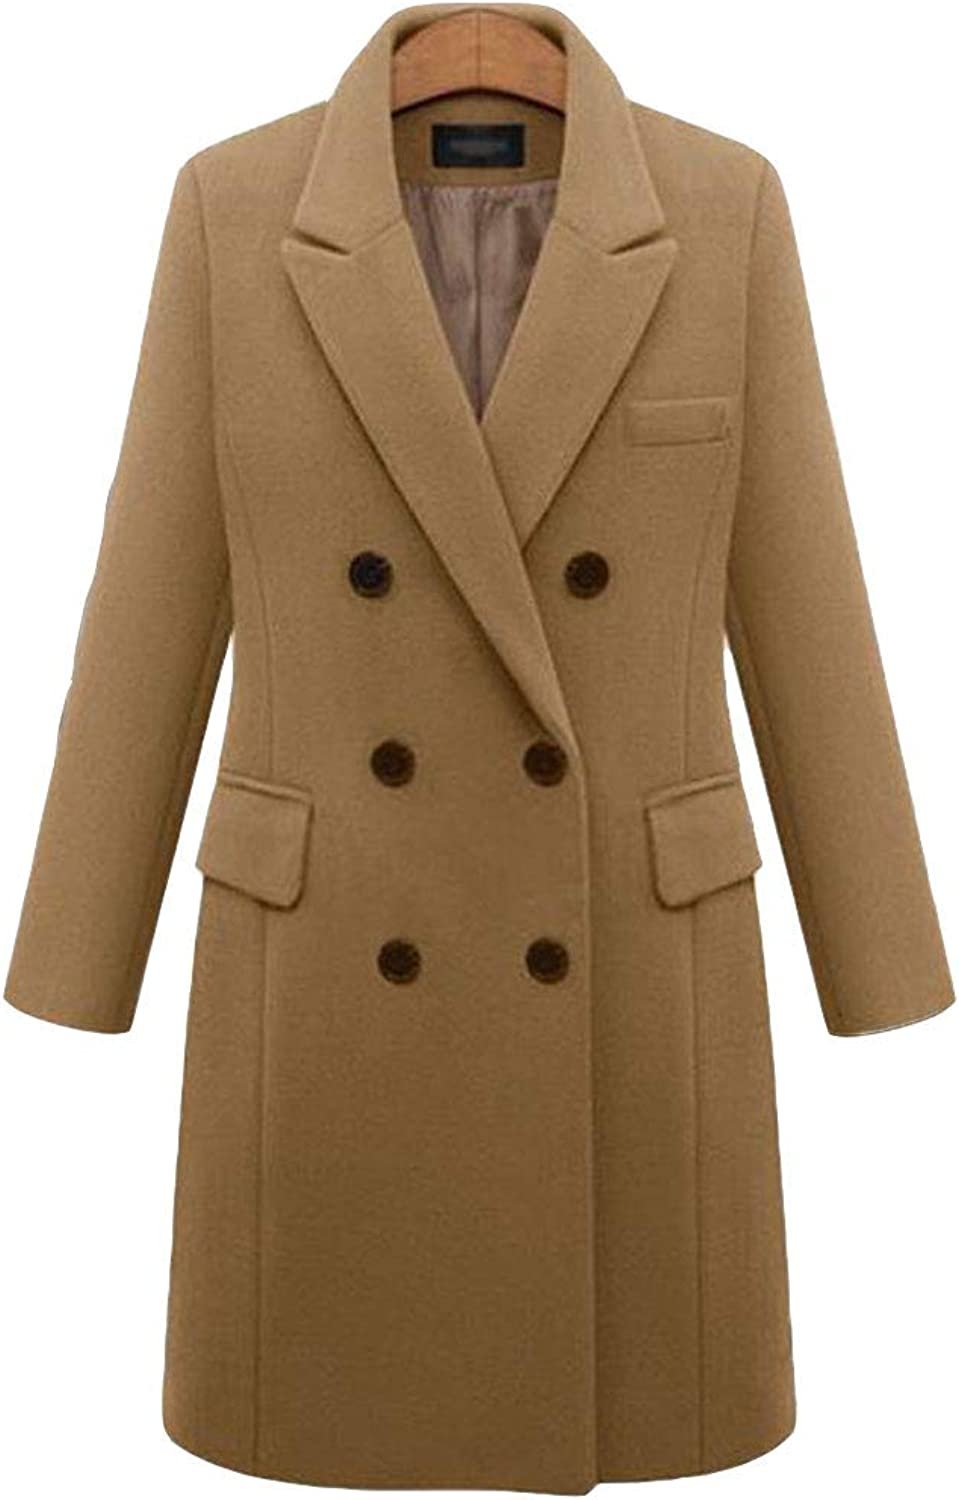 LINGMIN Women's Notched Lapel Pea Coats Double Breasted Long Sleeve Outwear Trench Coat